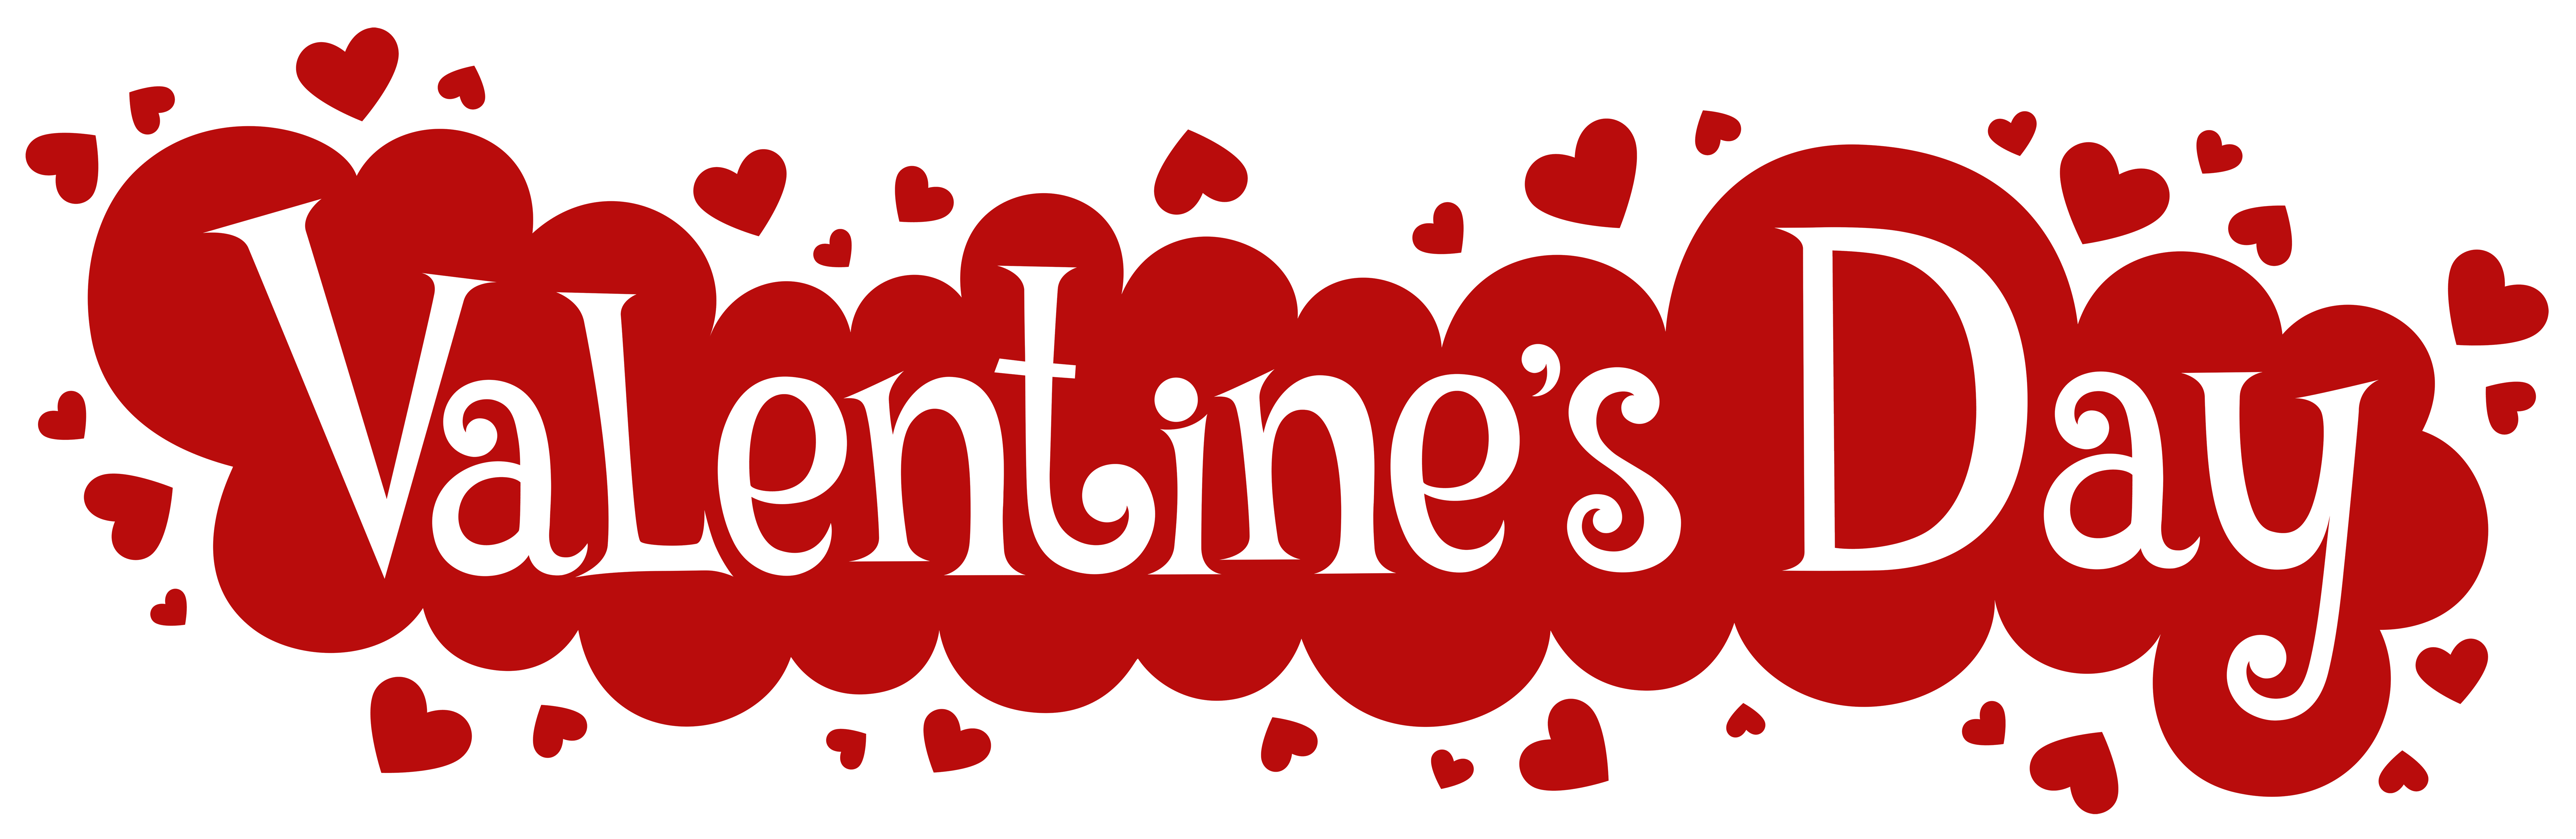 Valentine s image gallery. Valentines day clip art png png library library